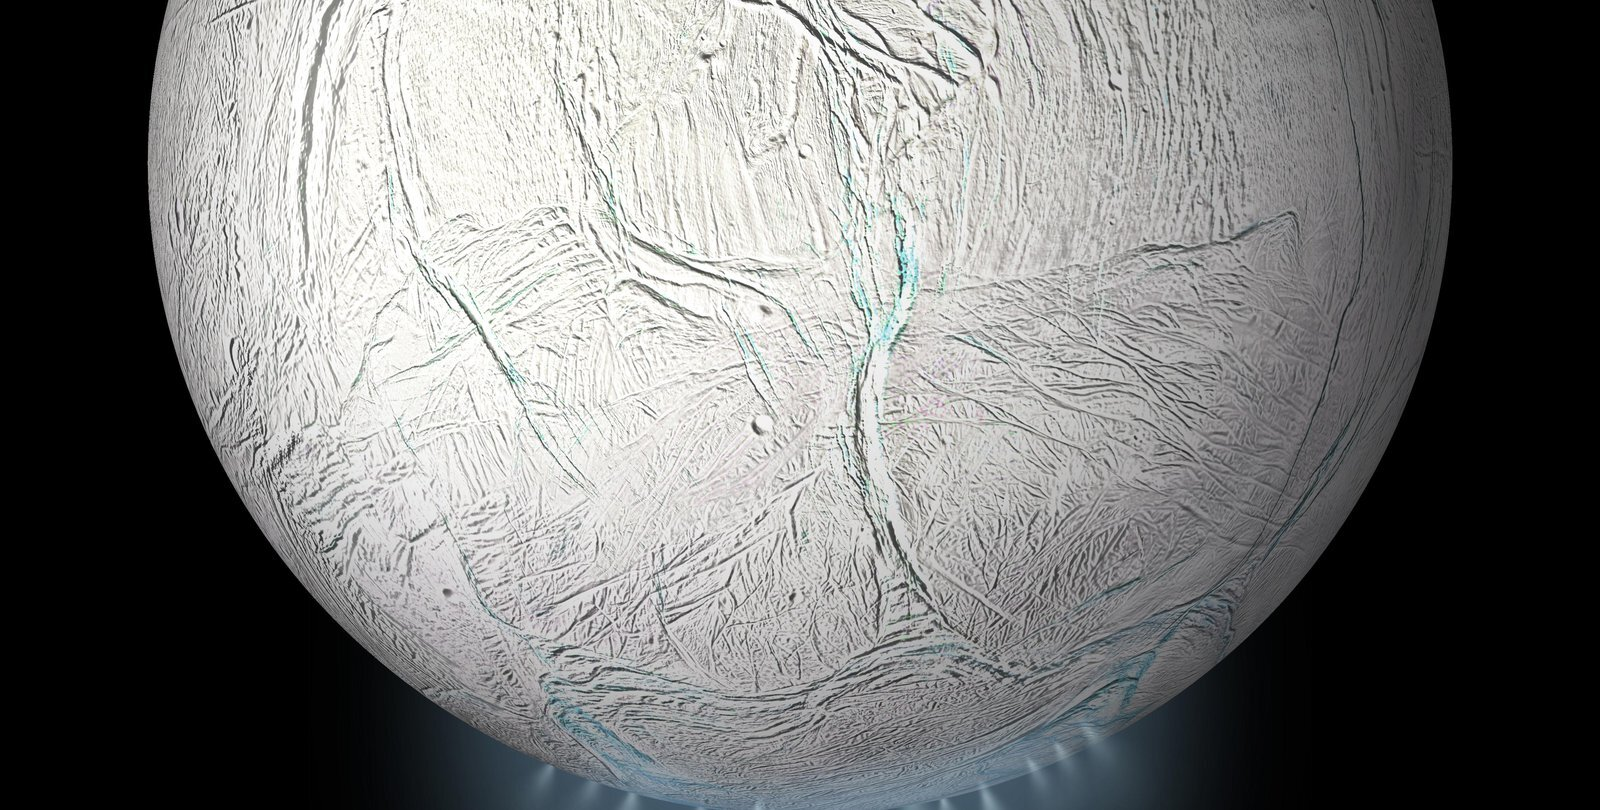 Ocean currents predicted on Enceladus